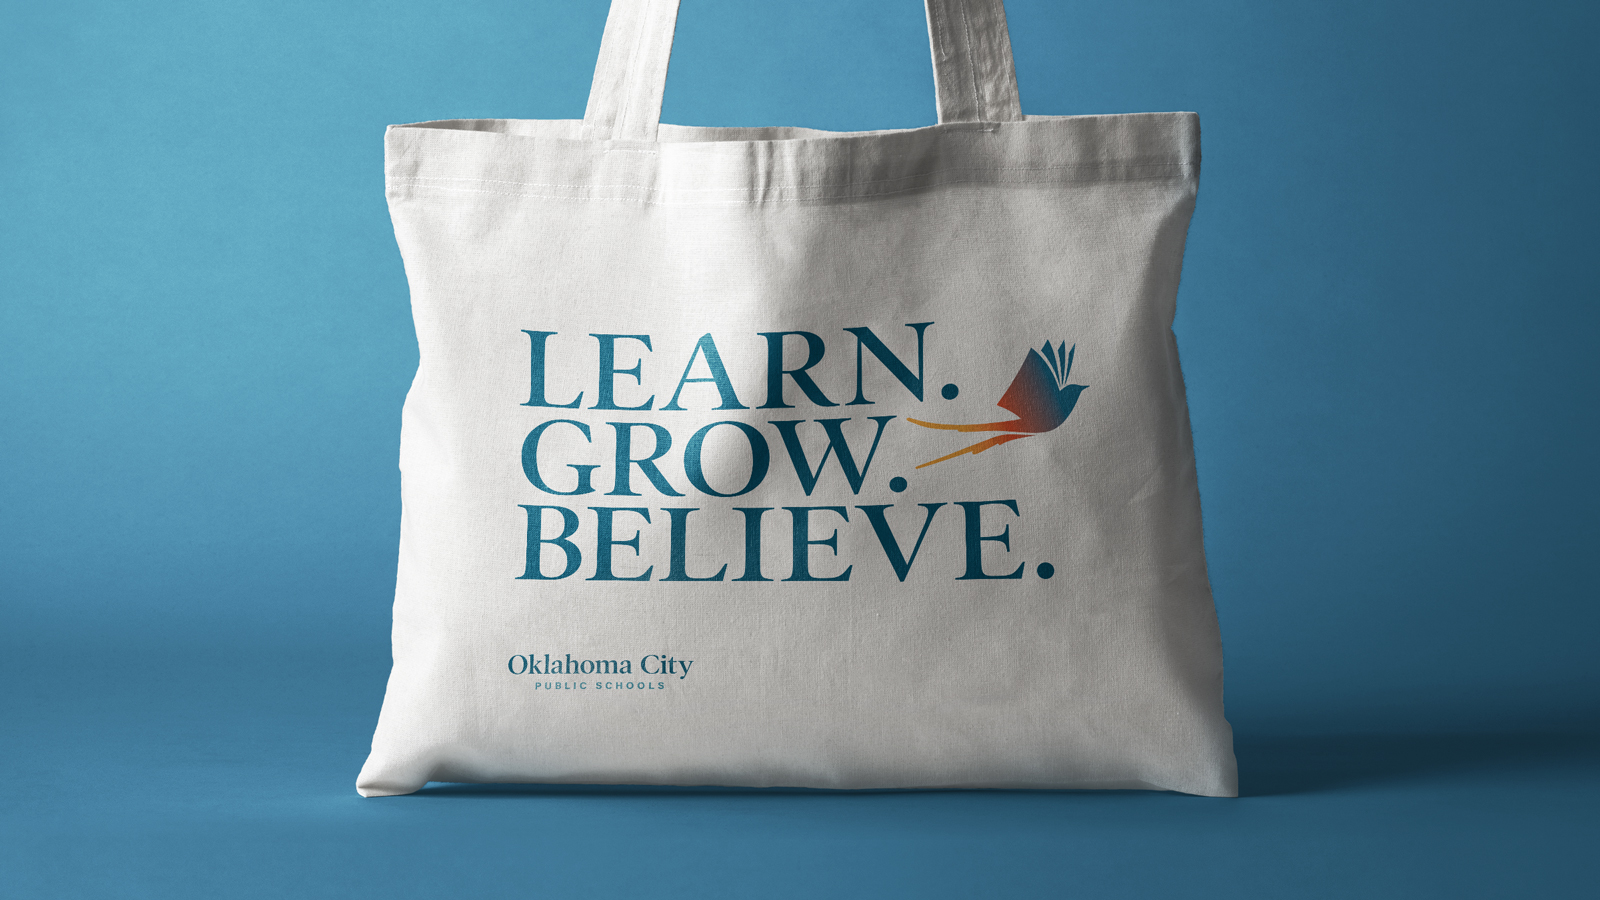 Oklahoma City Public Schools new brand tote bag design